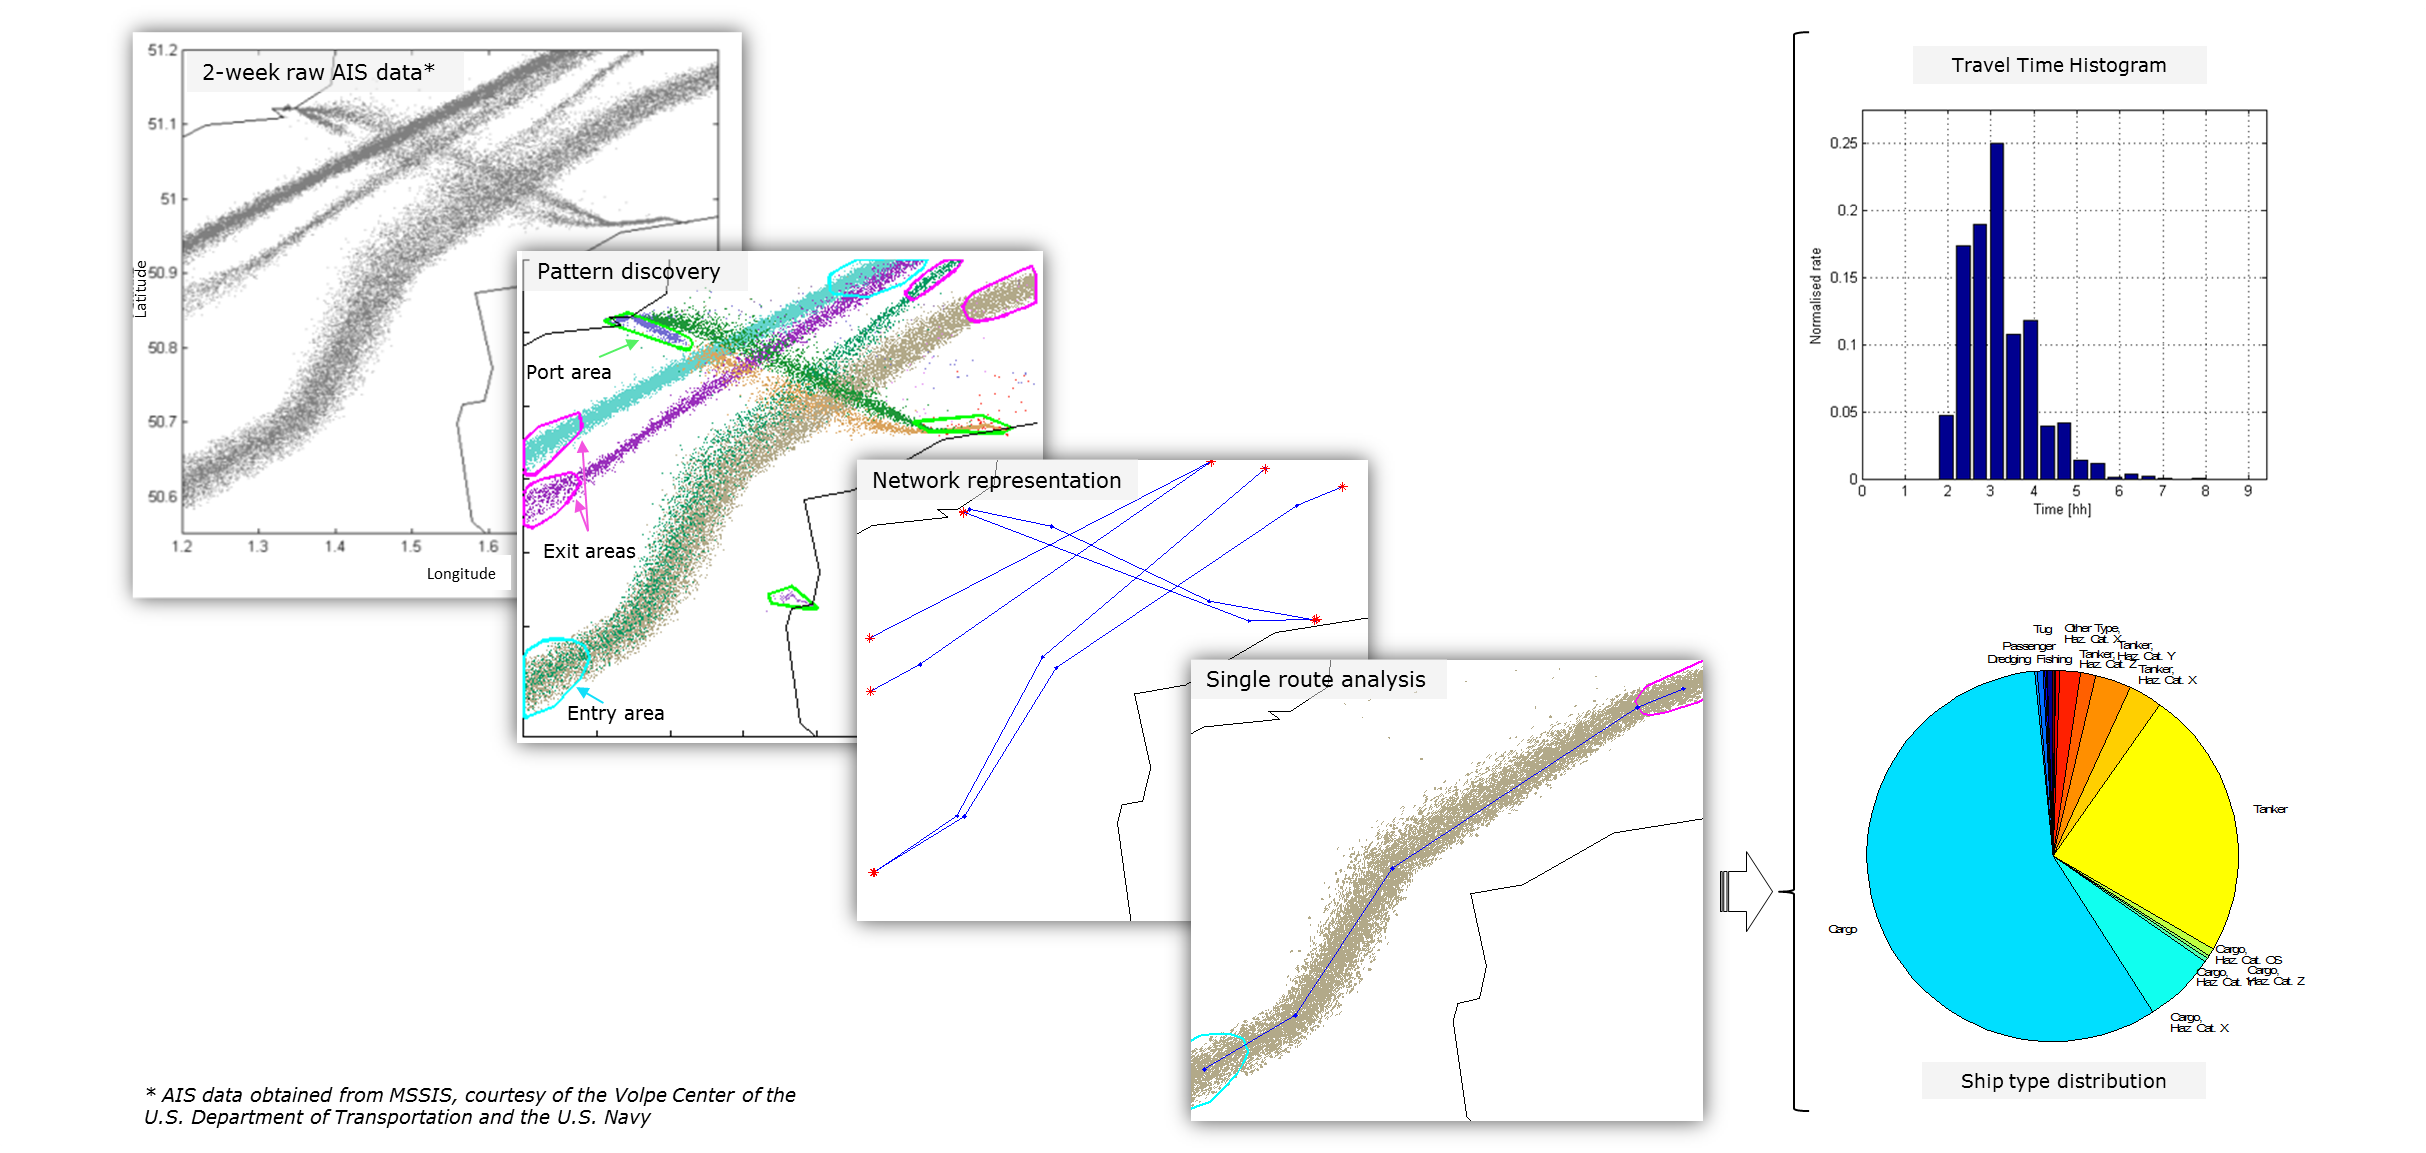 Knowledge Discovery: extraction of main route patterns in the Channel